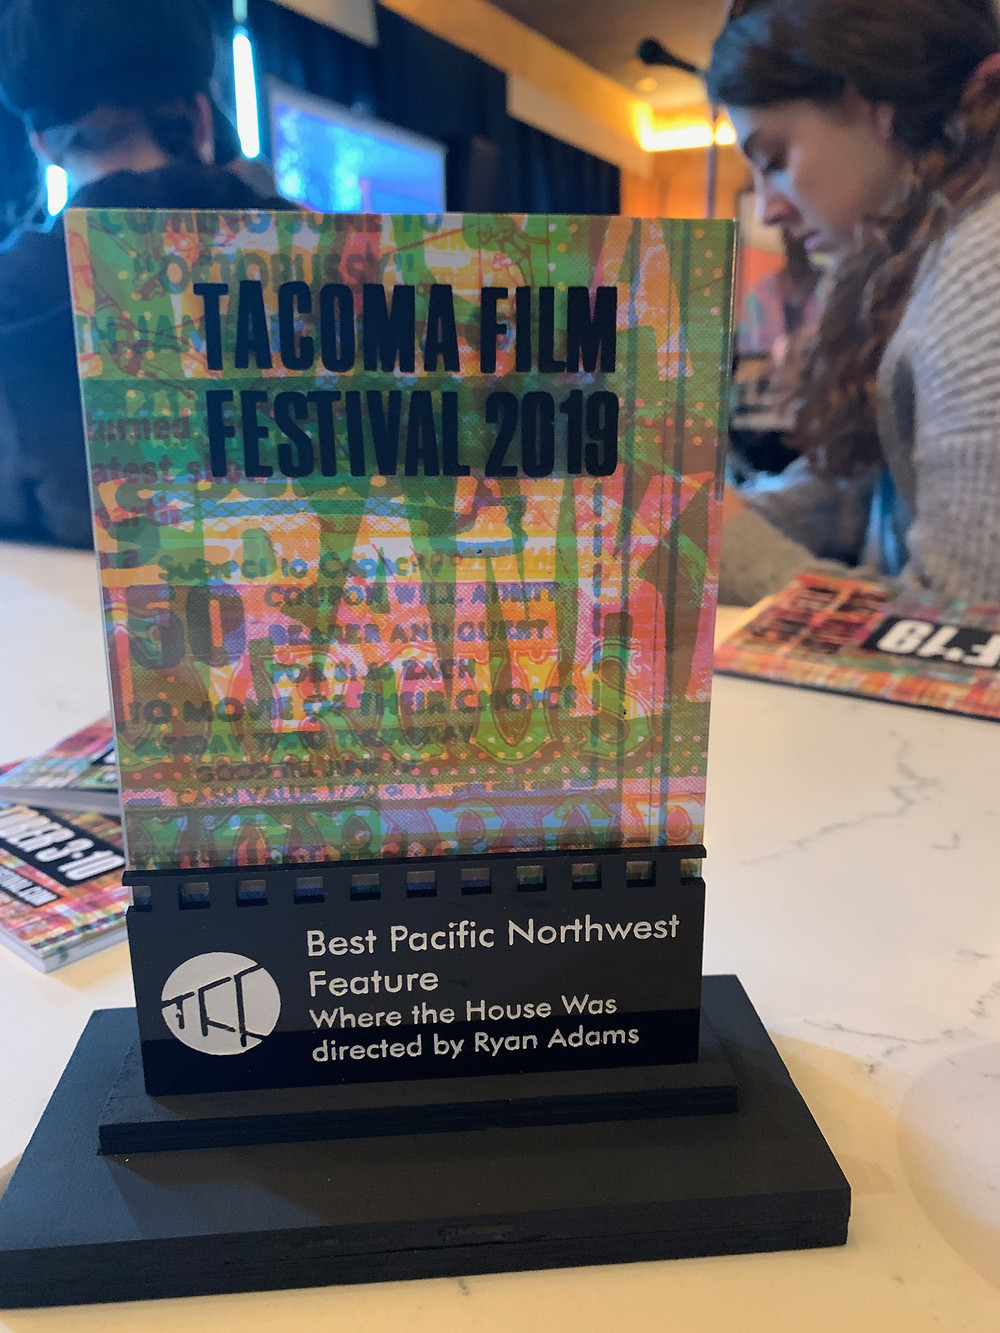 Award for Best Pacific Northwest Feature at Tacoma Film Festival, engraved to Where the House Was and director Ryan K. Adams